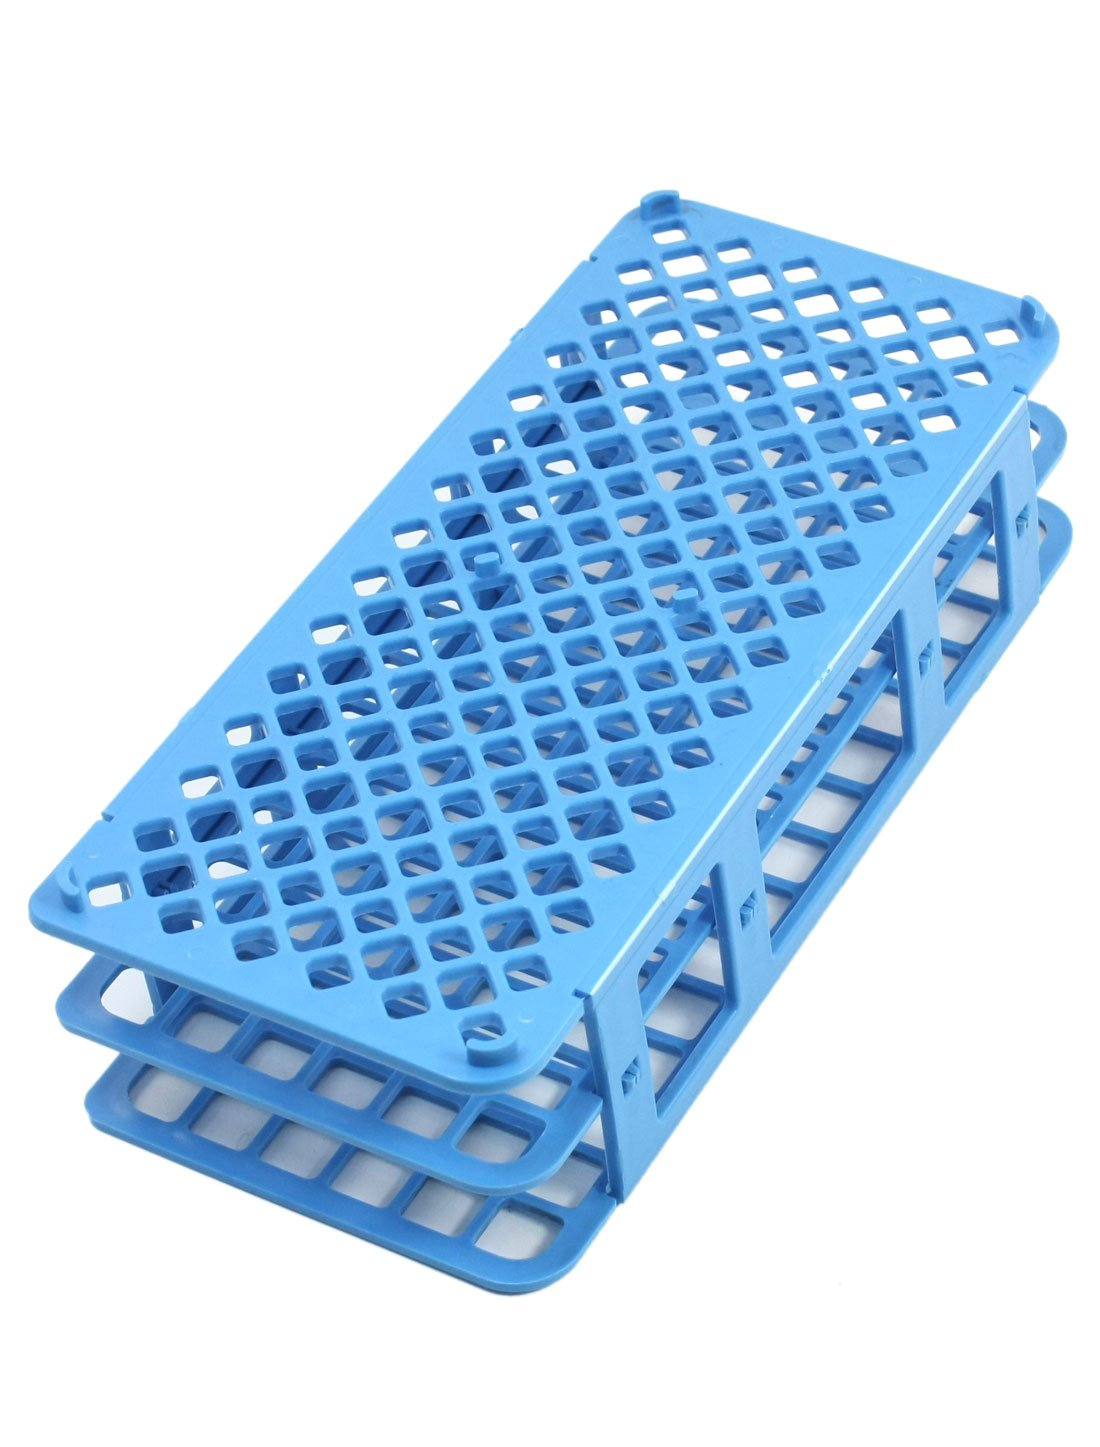 Lab Tool Blue Plastic 90 Position 12mm Hole Test Tube Stand Holder by uxcell (Image #2)